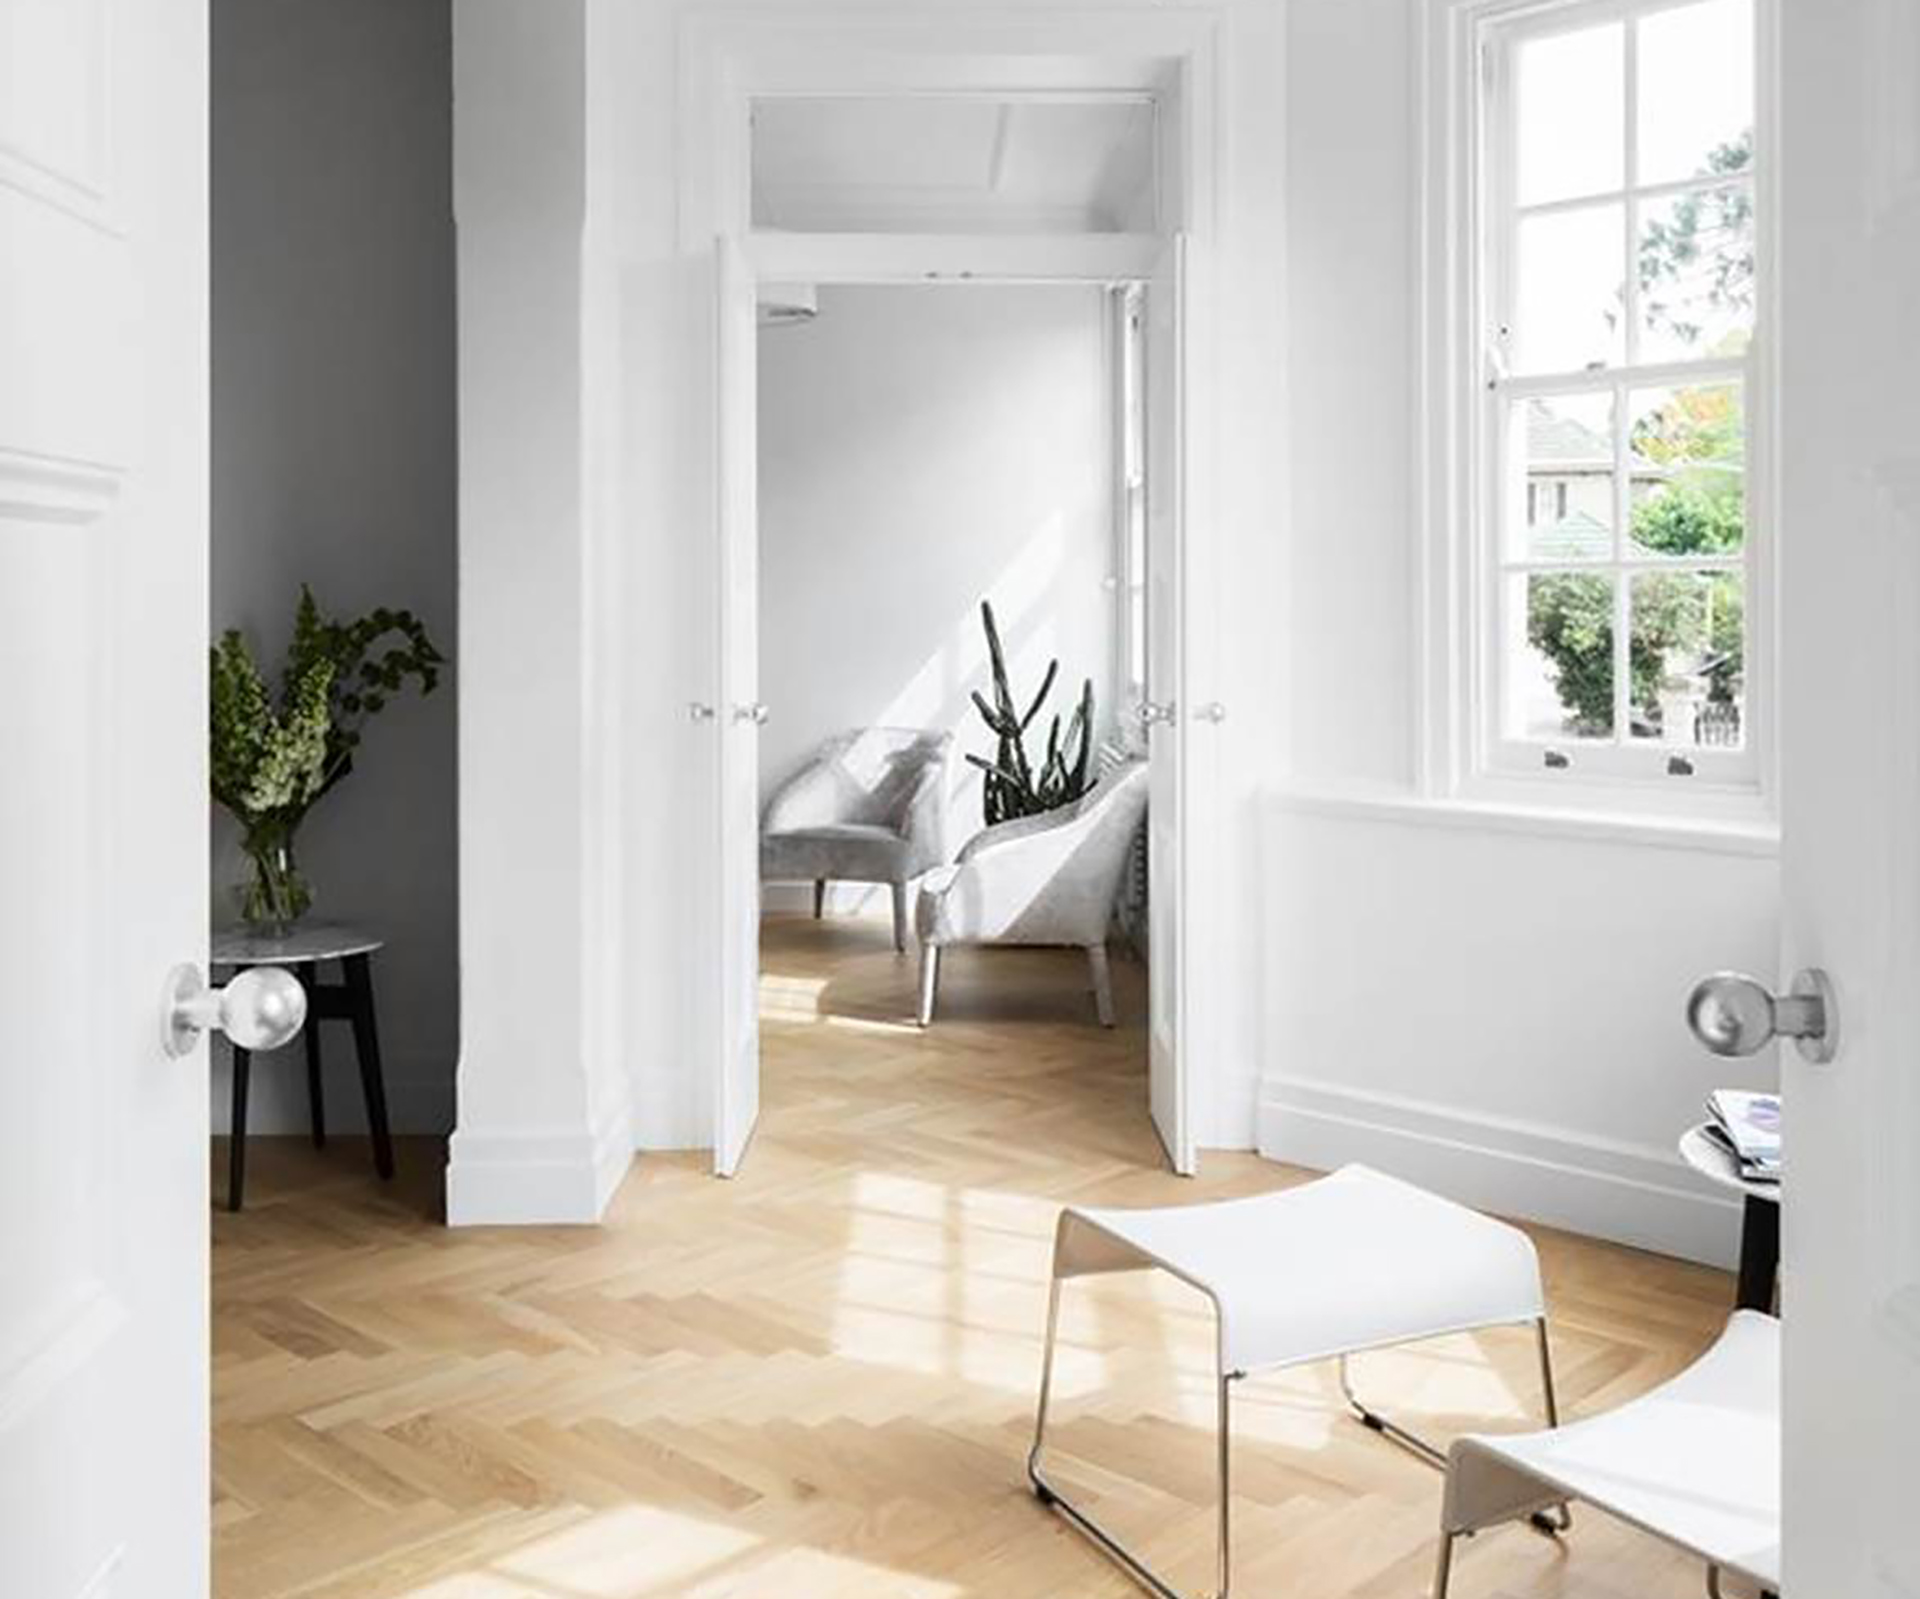 10 light-filled spaces to inspire | Belle